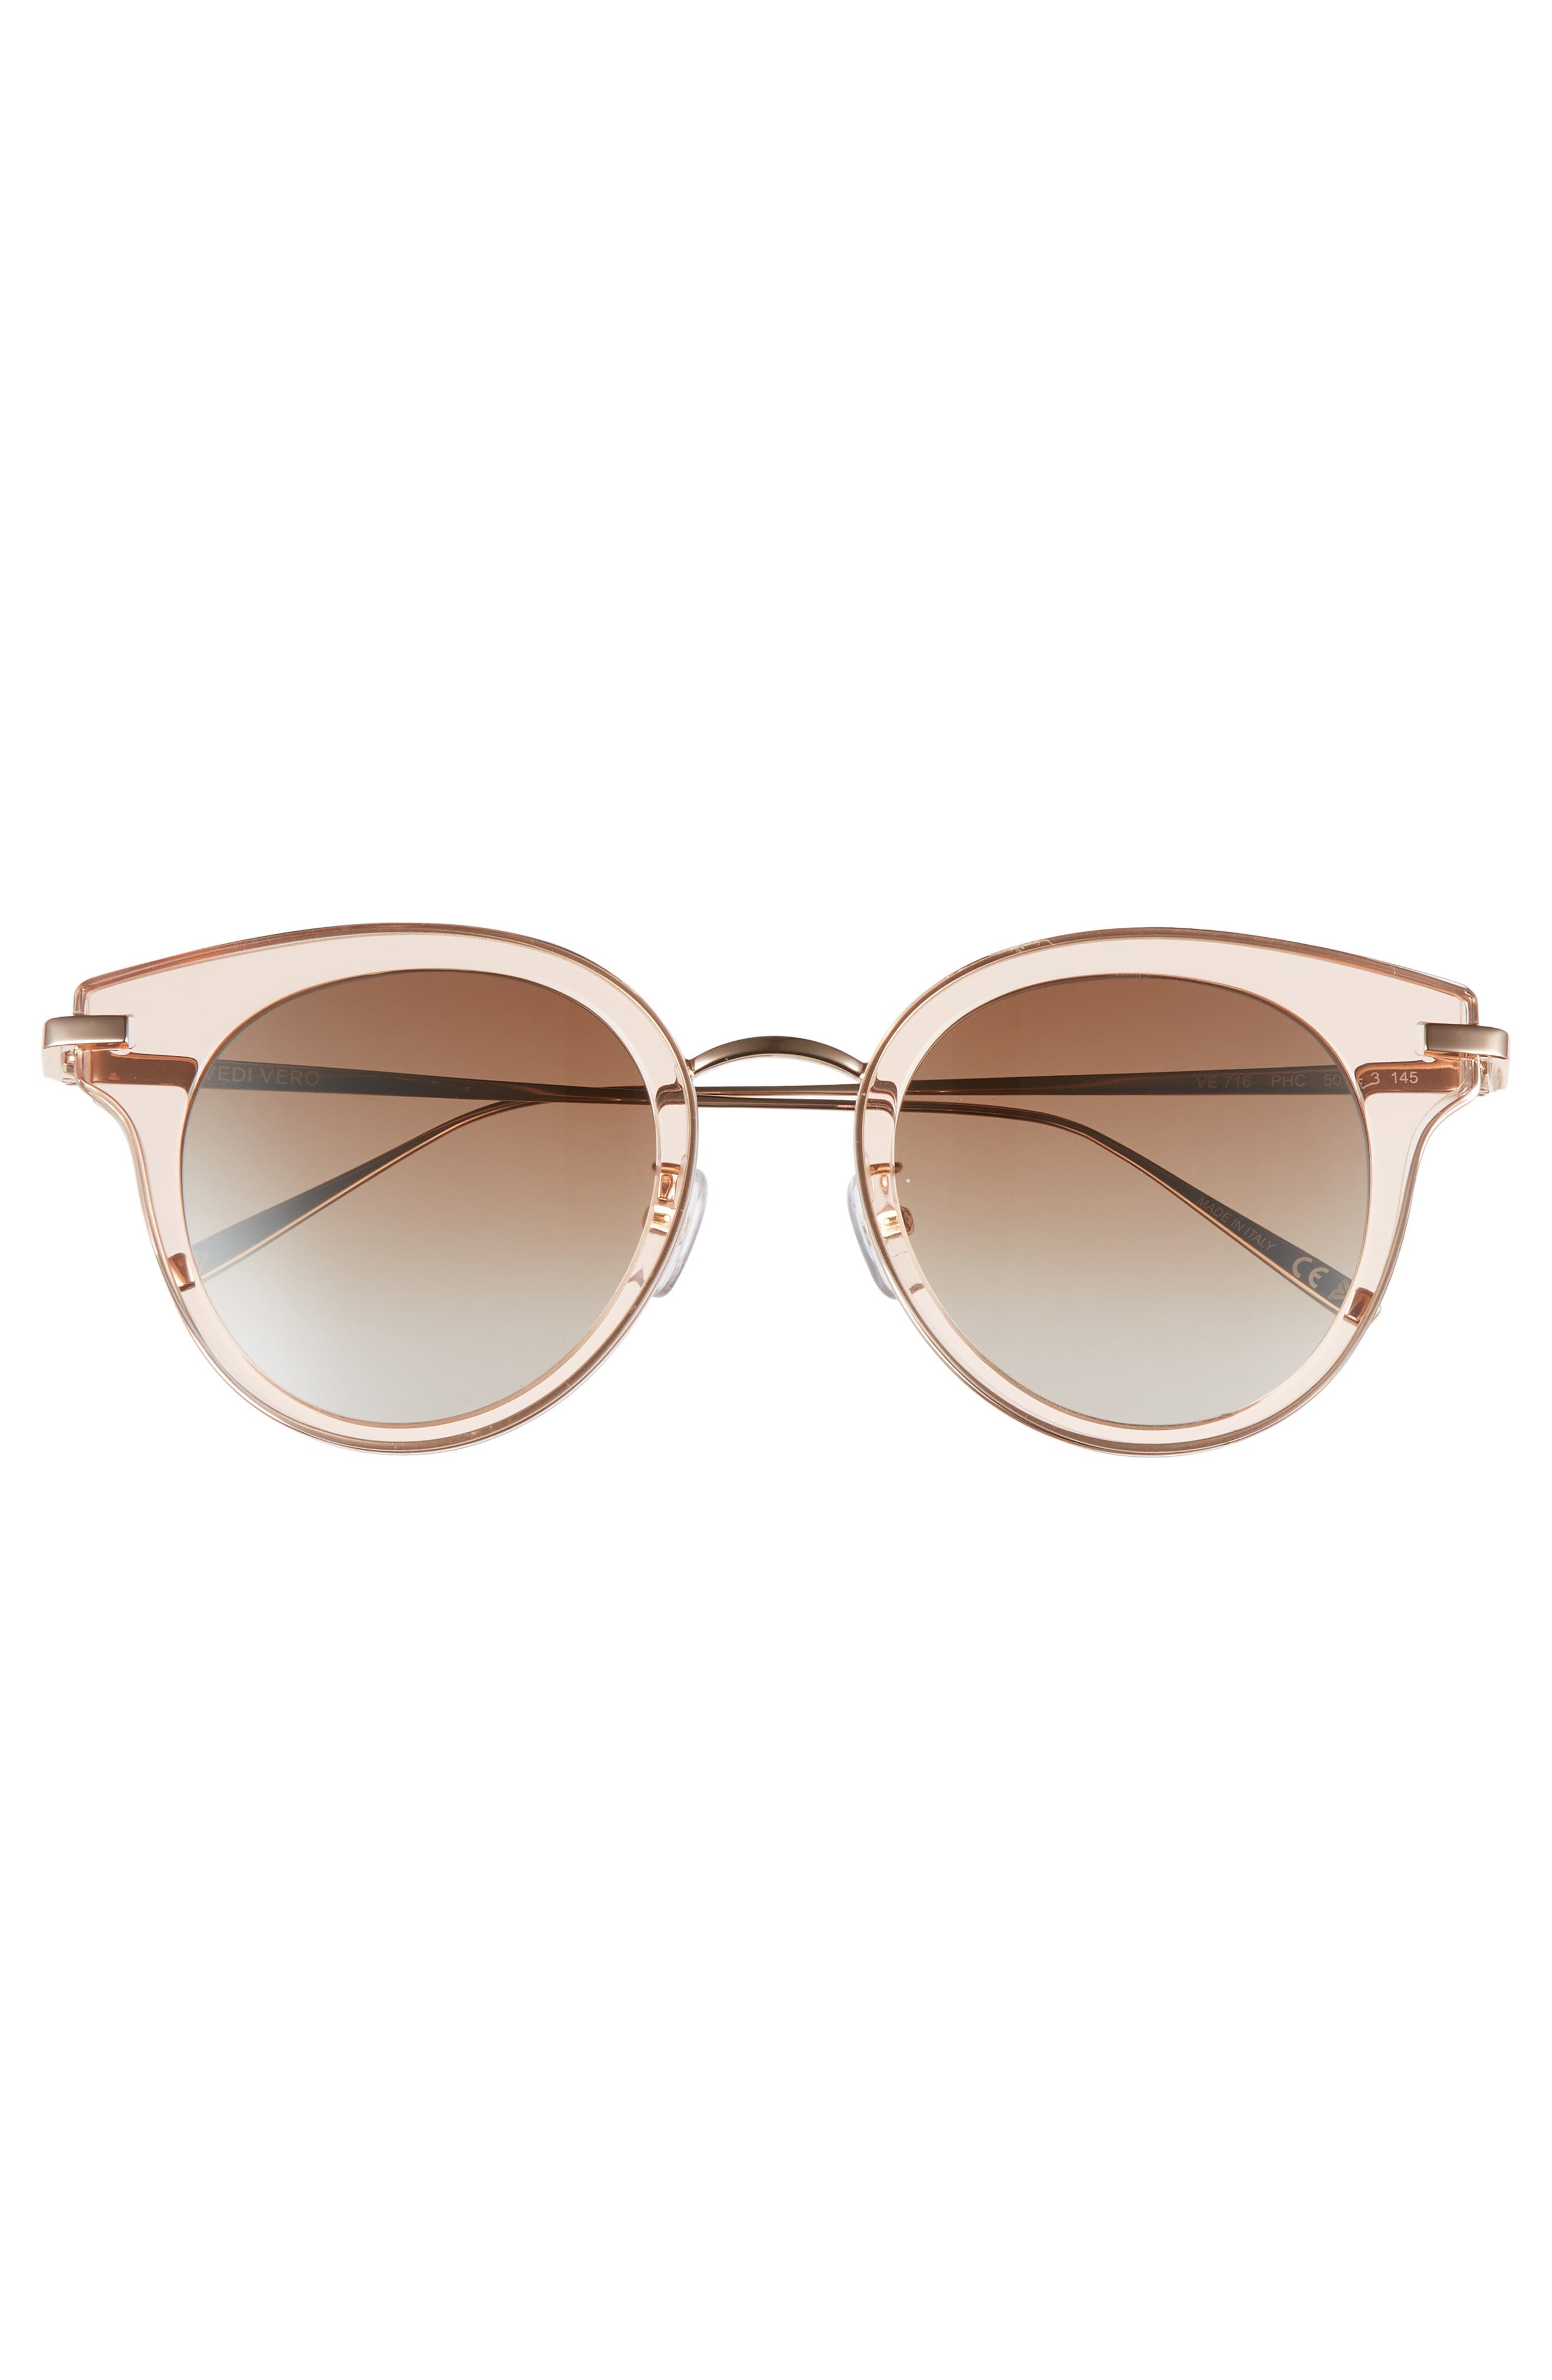 50mm Round Sunglasses,                             Alternate thumbnail 3, color,                             Rose Gold/Brown Mirror